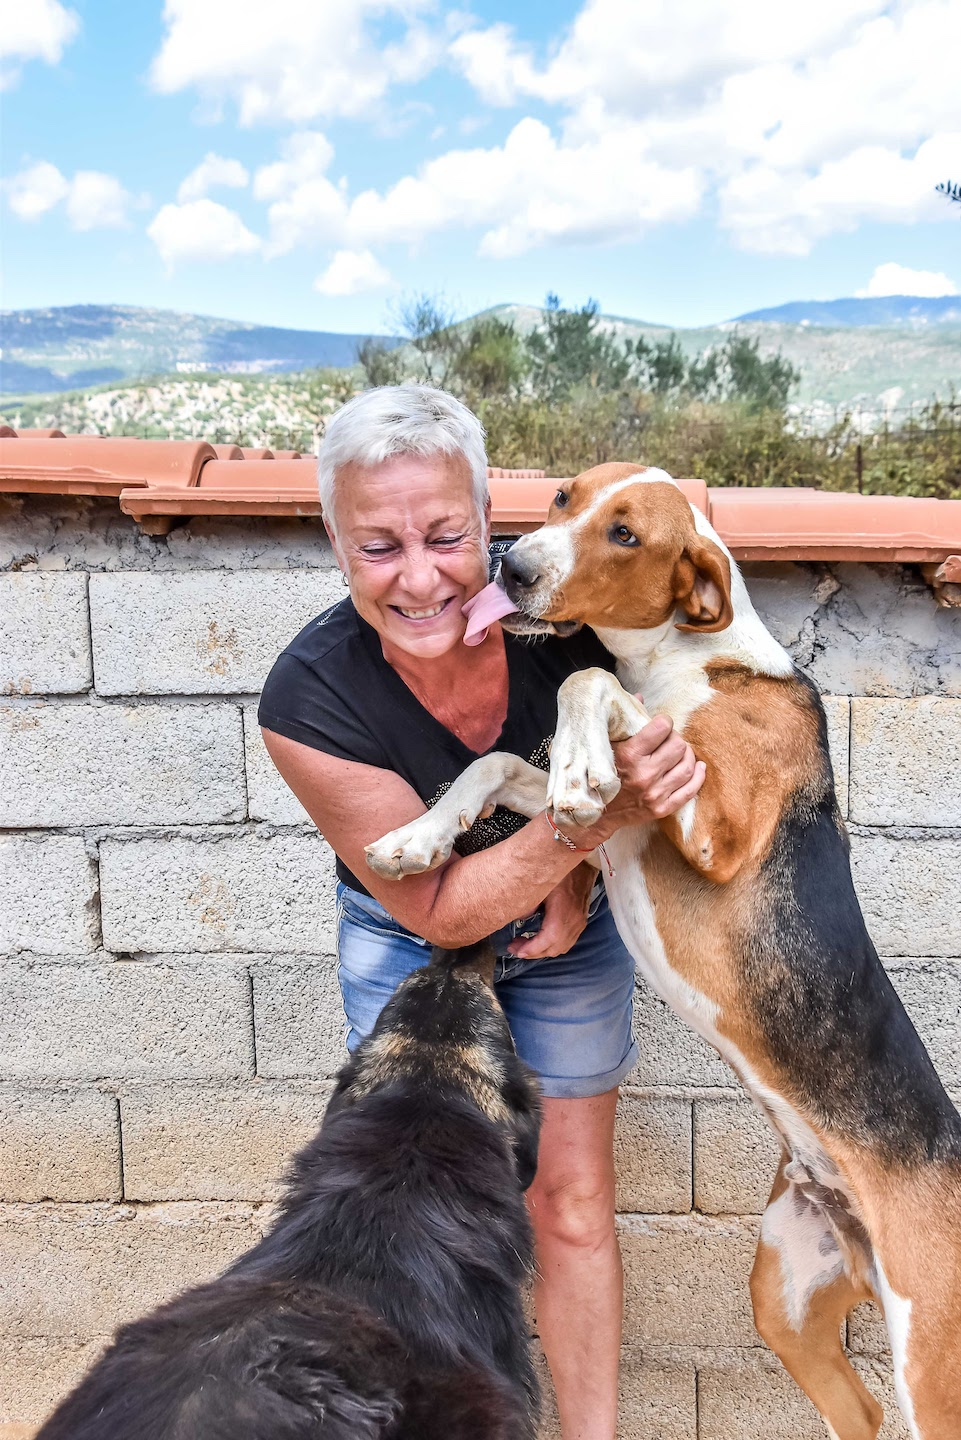 Cuddles from the dogs at Animal Rescue Kefalonia